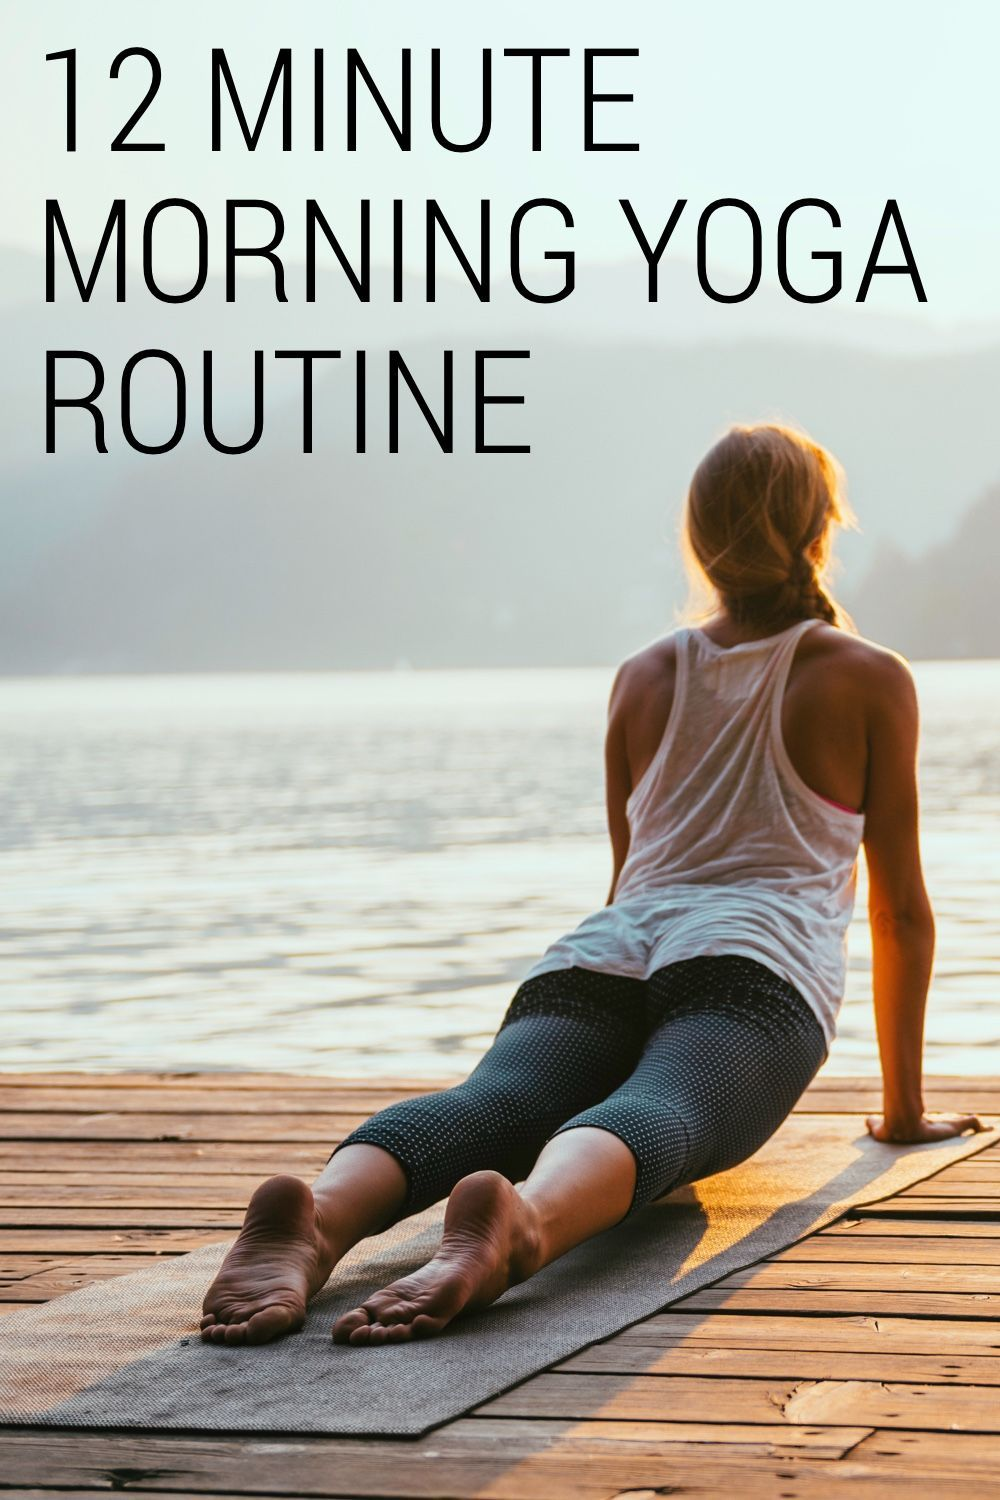 Morning Yoga: A 12-Minute Yoga Routine to Start Your Day